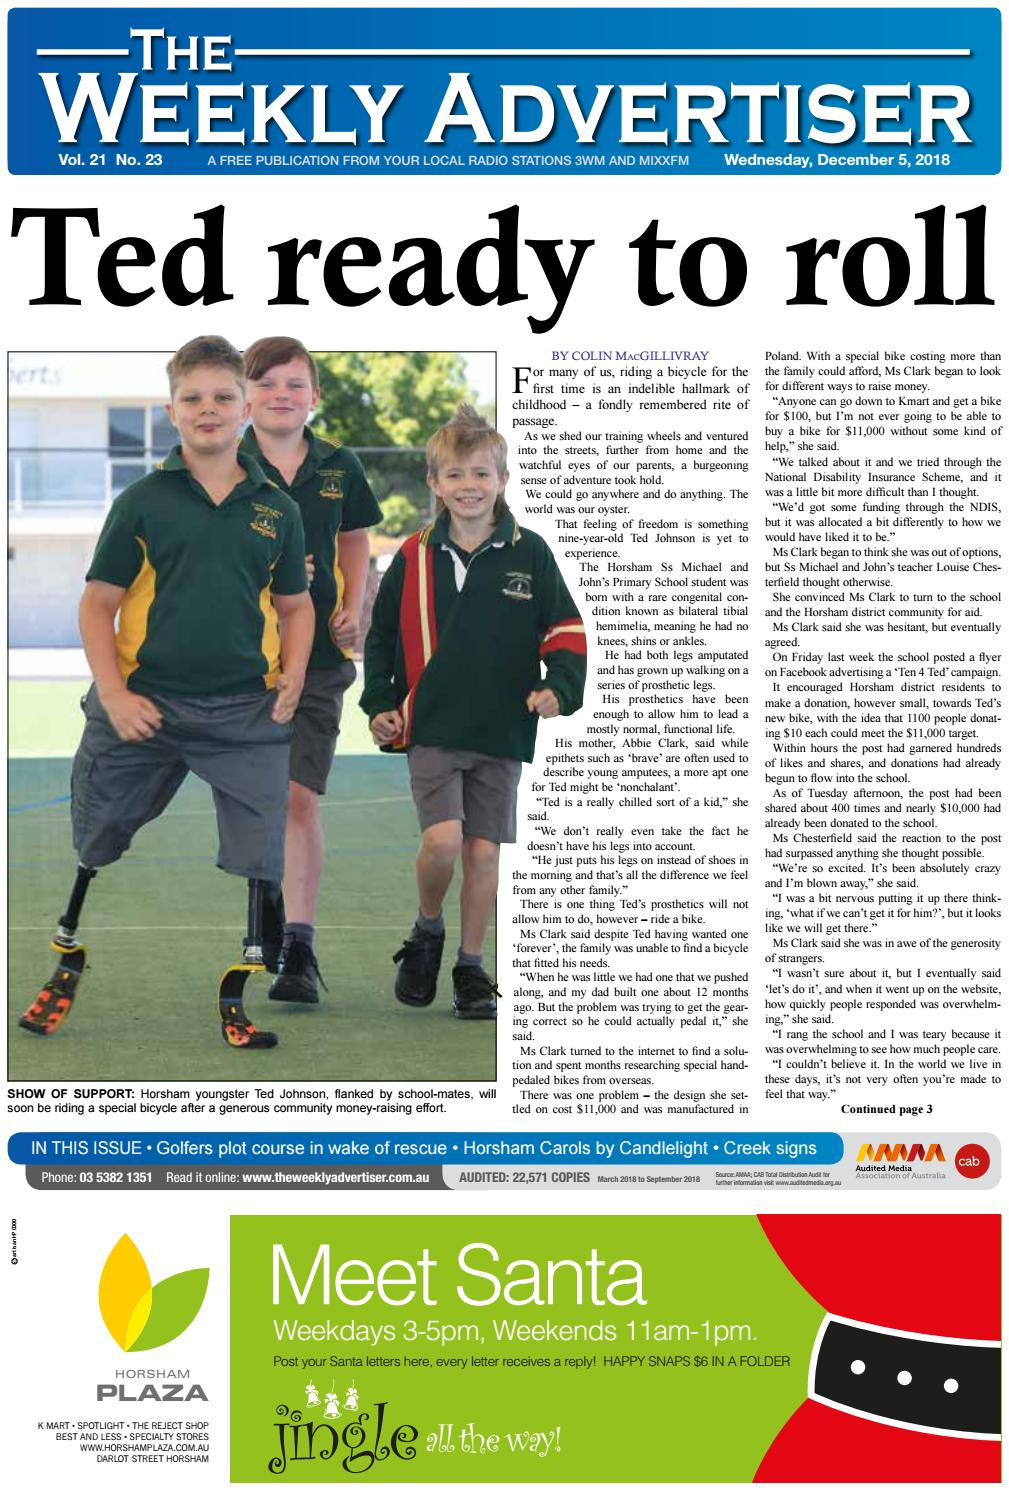 7a57a9fc01fb6 The Weekly Advertiser - Wednesday